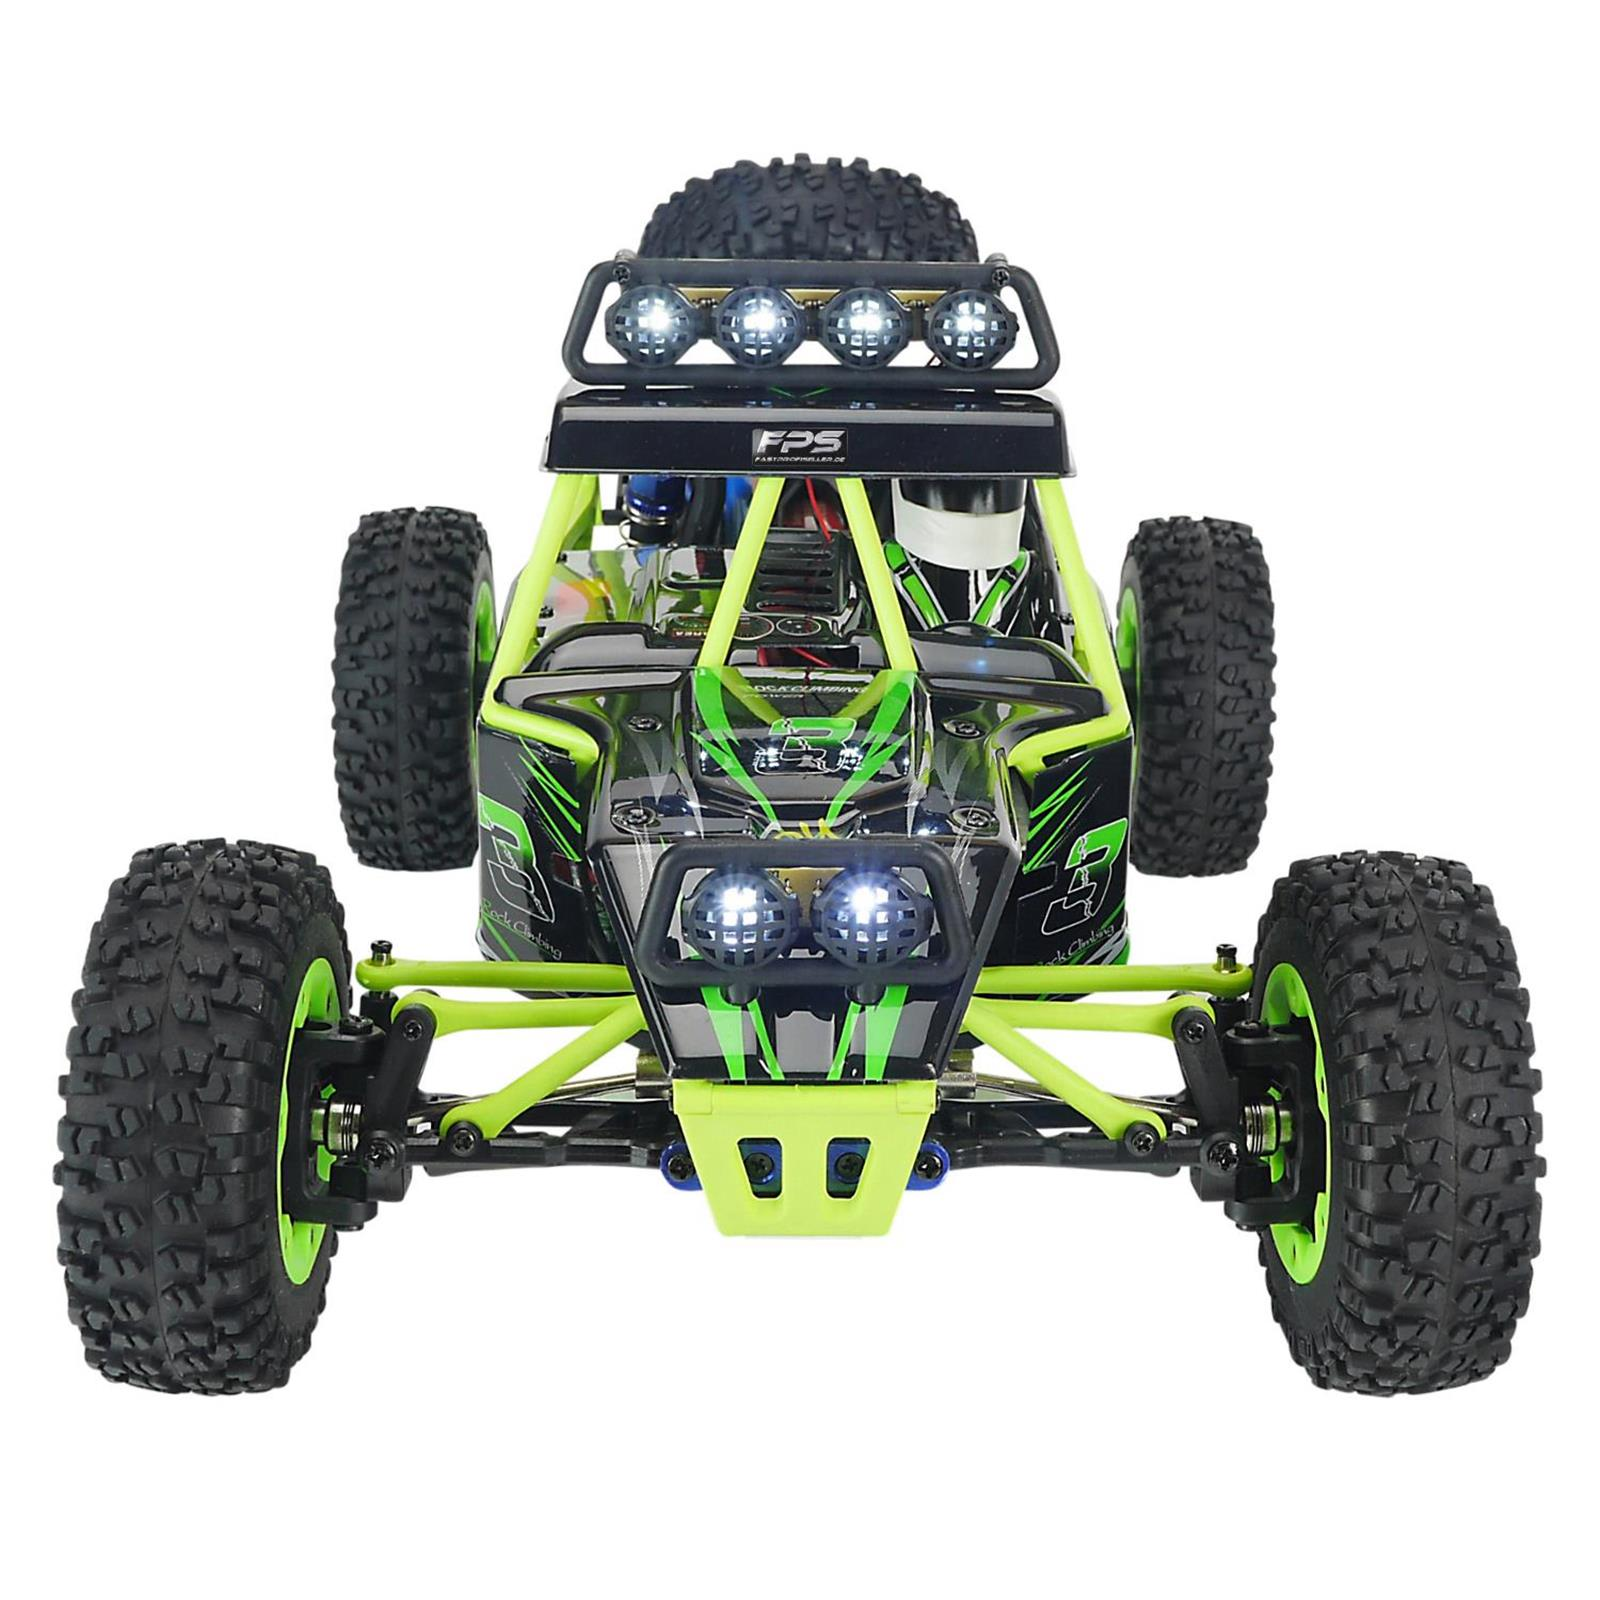 rc truggy pro v2 buggy 2 4g elektro auto 50 km h 4wd 1 12. Black Bedroom Furniture Sets. Home Design Ideas